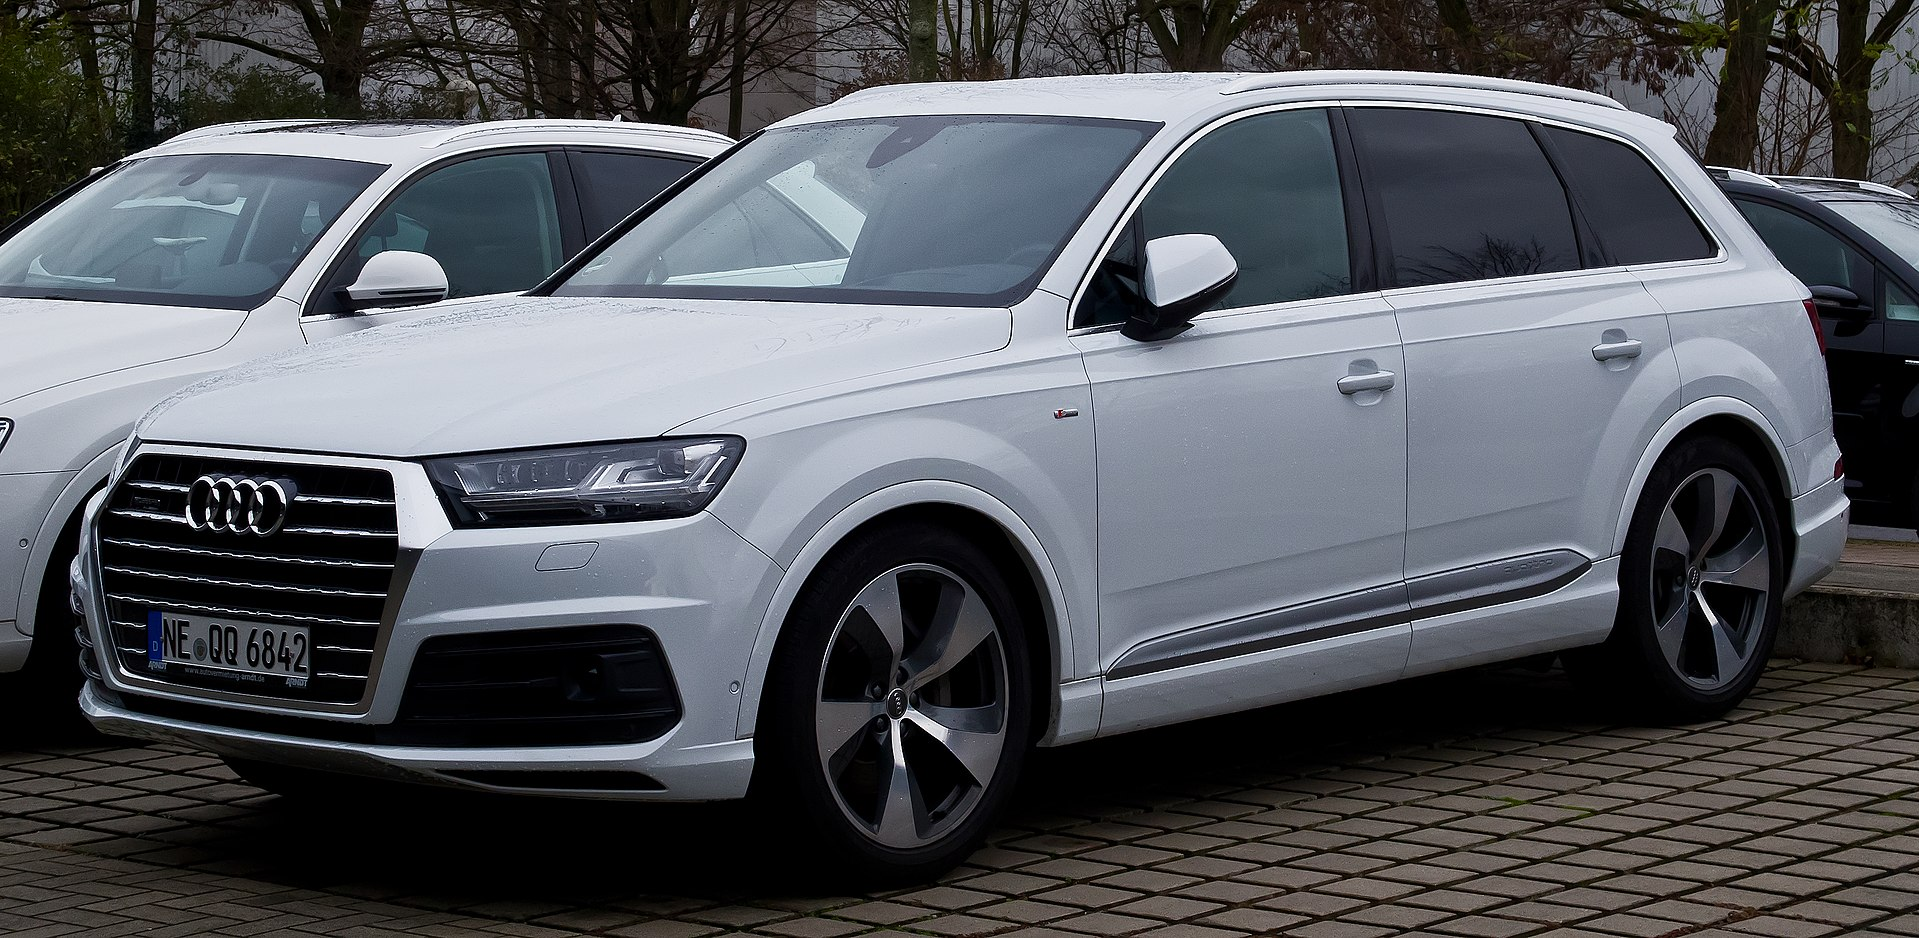 Changing for Audi A4/Avant from 2008/to 2014/Integrated Rails Model Tiger XL Aluminium Bars